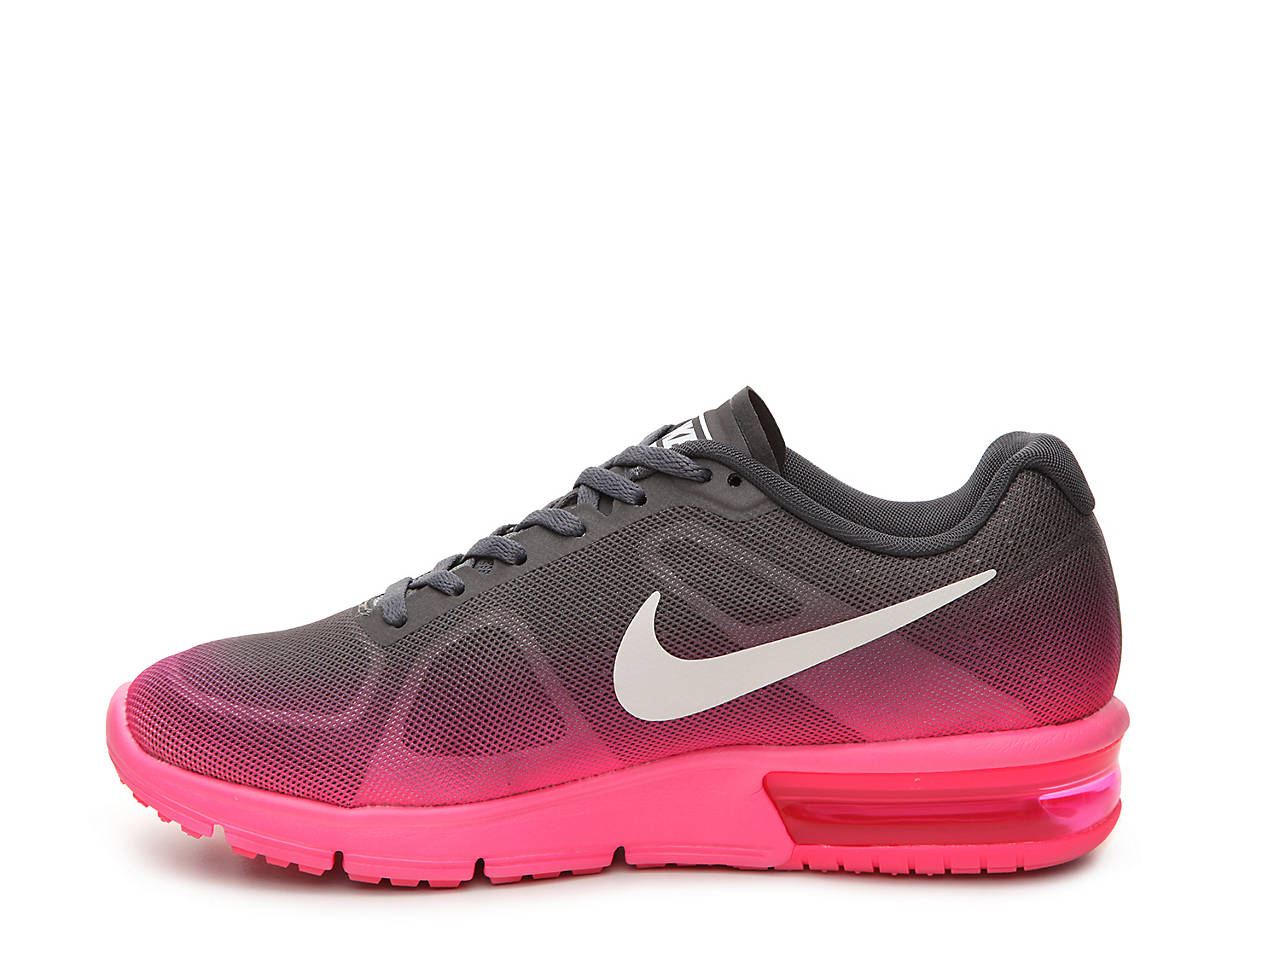 350c798e4e567 ... Nike Nike Air Max Sequent Performance Running Shoe - Womens Womens  Shoes DSW ...